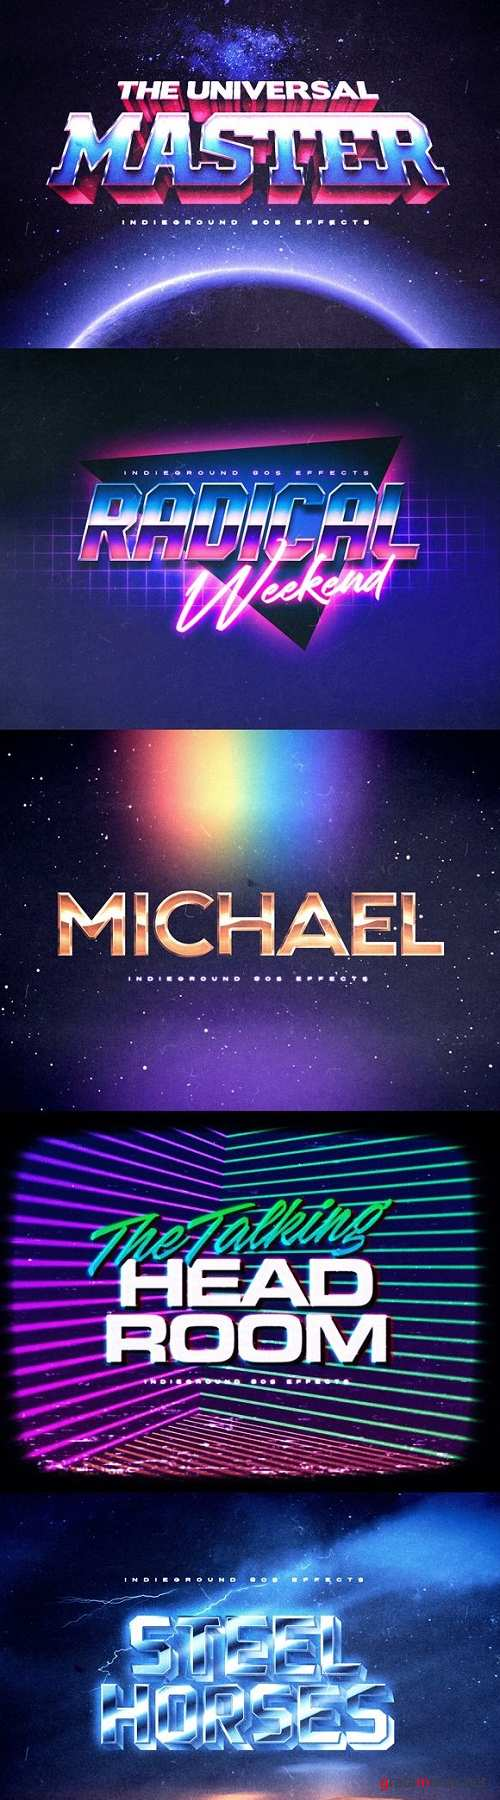 80s Text Effects Vol.2 22912583